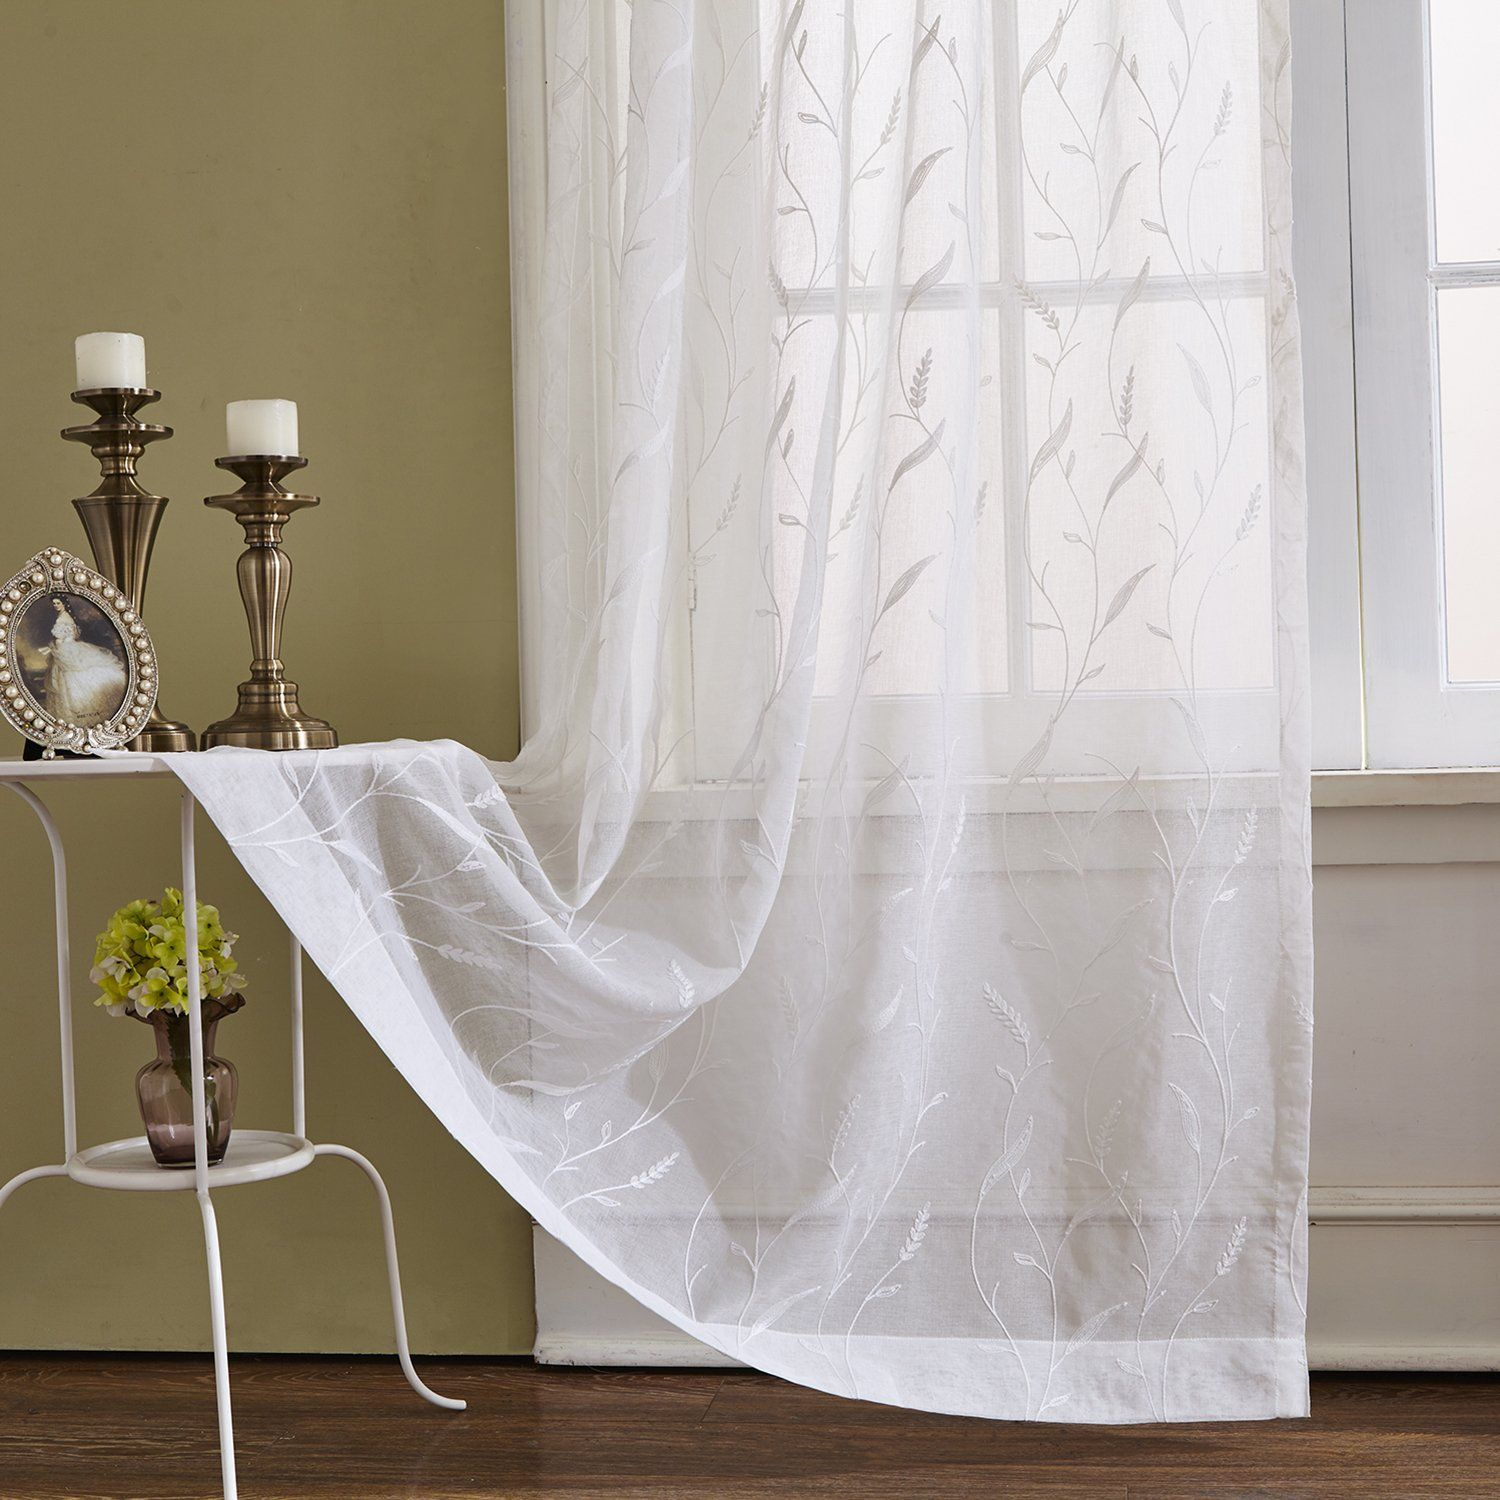 White Rod Pocket Sheer Curtains 106 Inches Long Tassels